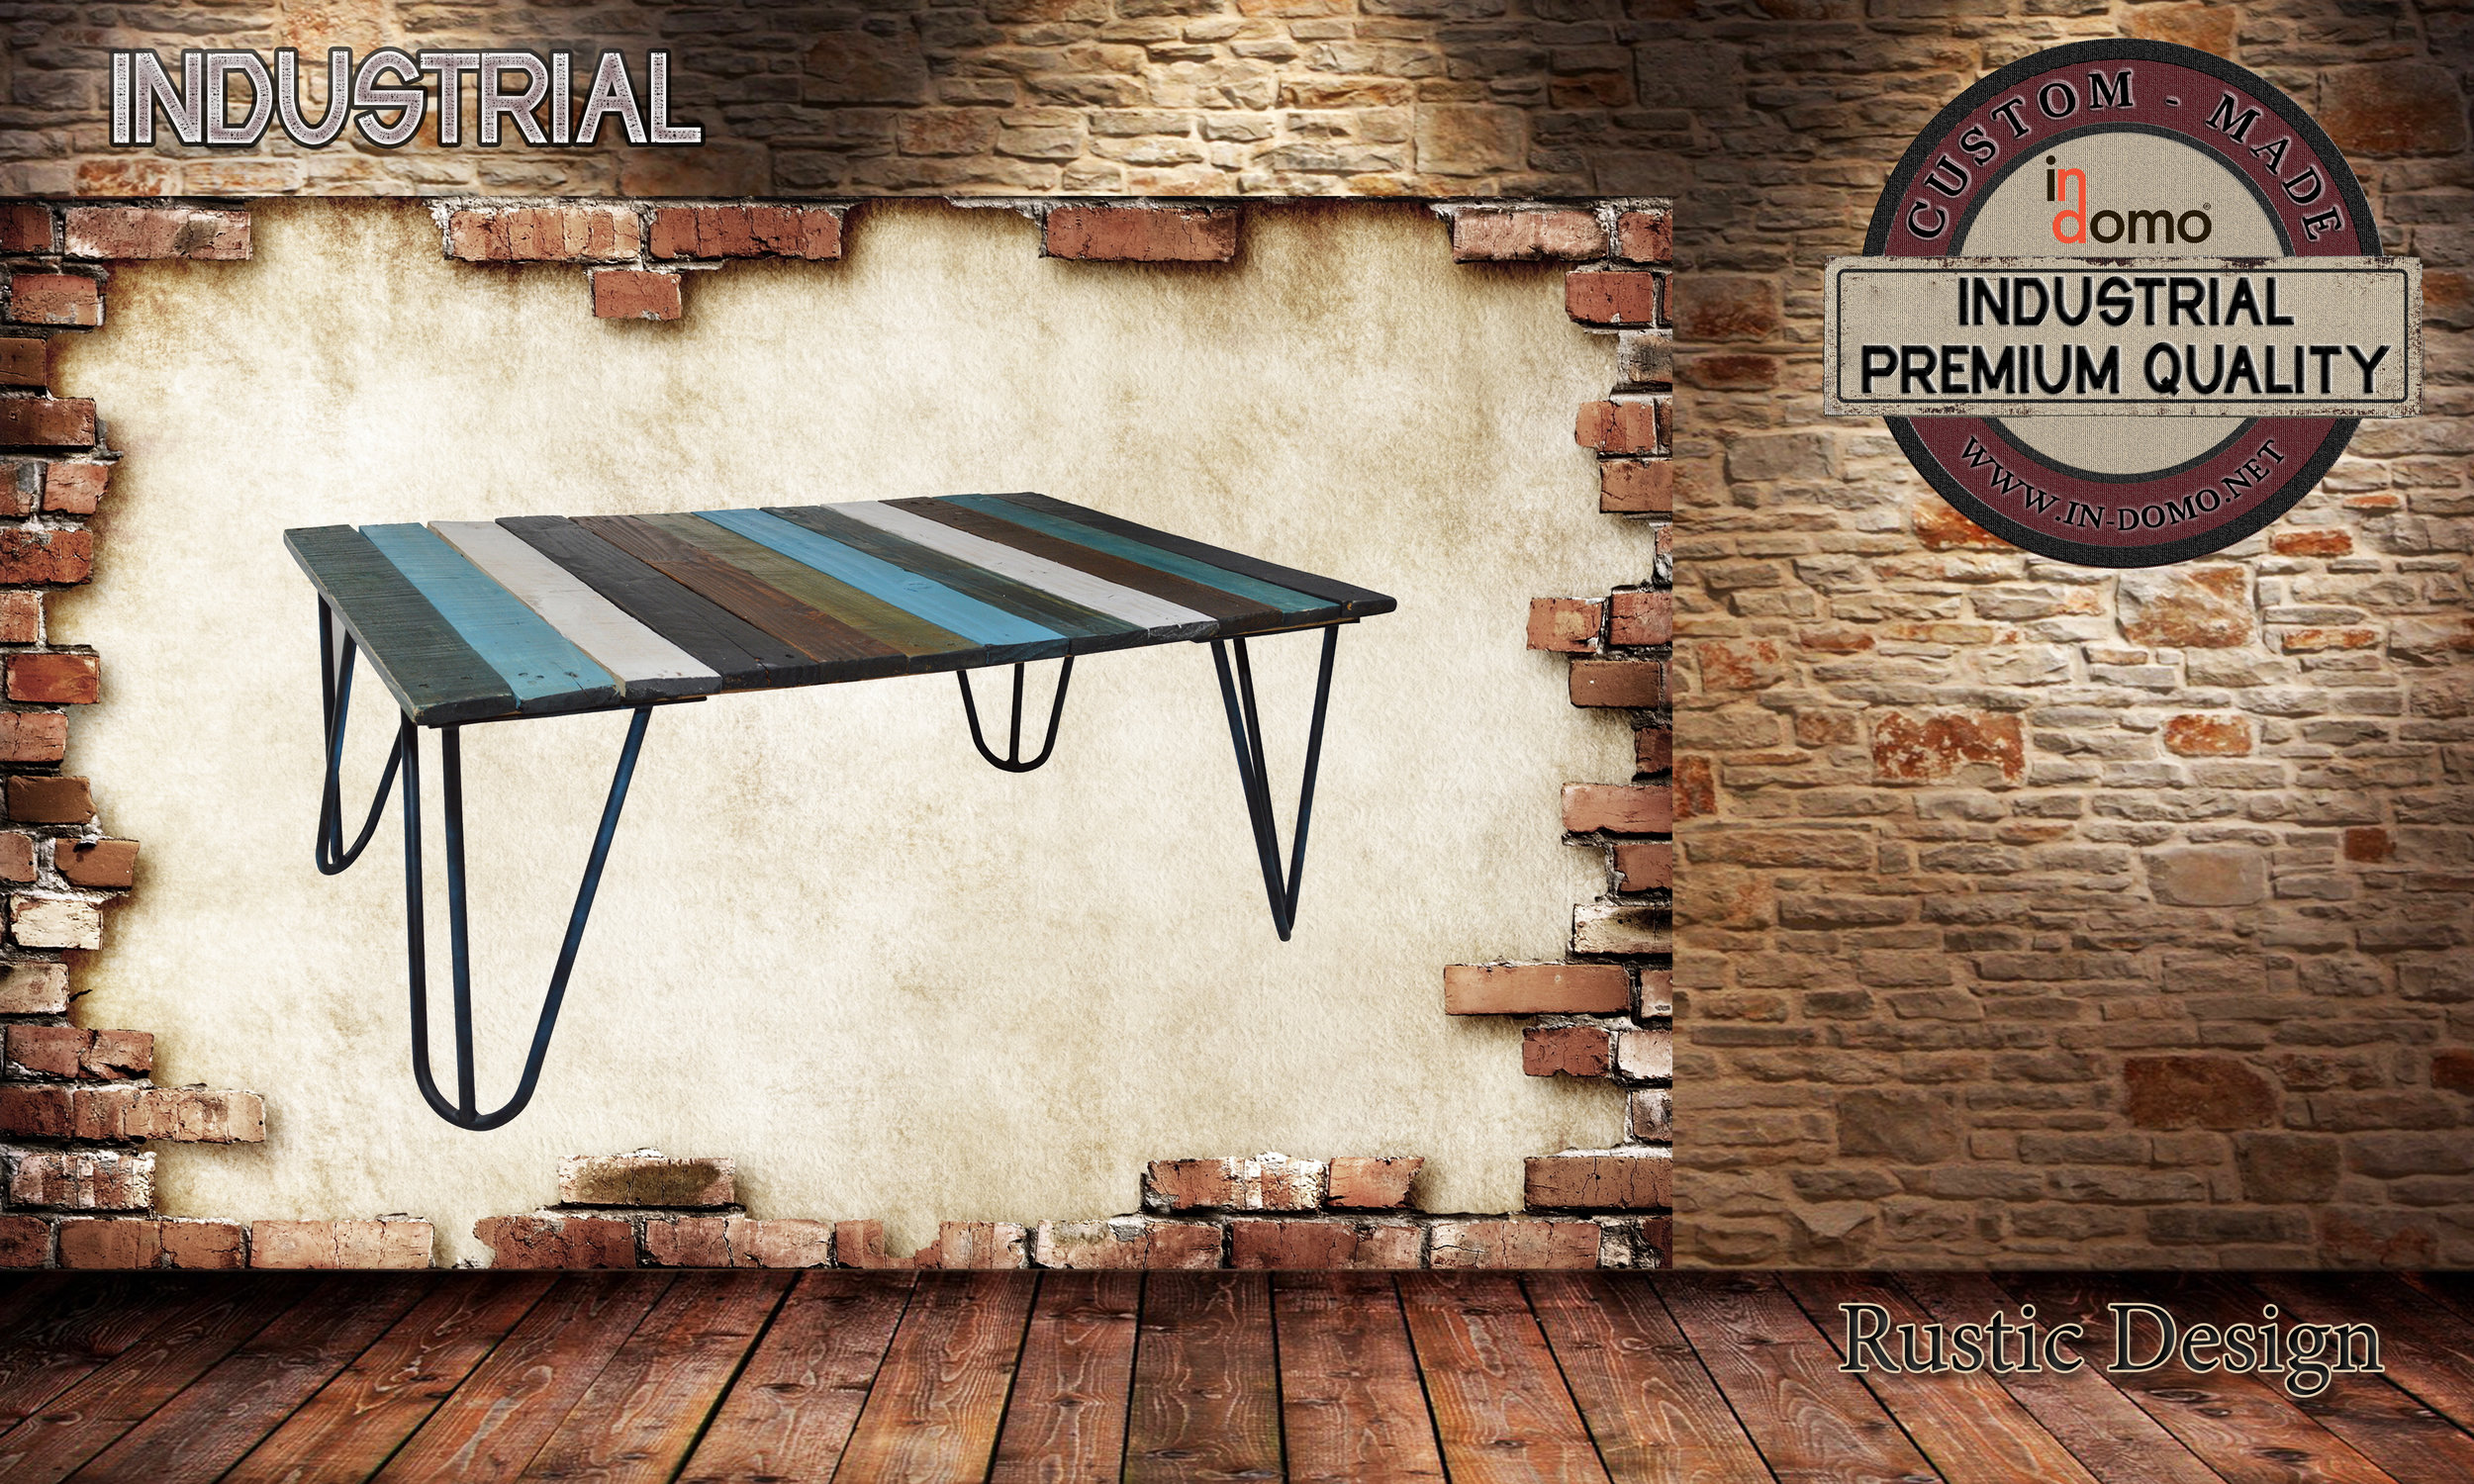 CUSTOM-MADE INDUSTRIAL Coffee table PERSONALIsED BY YOUR CHOICE OF PAINTS AND DIMENSIONS. 90X60X35 (TO ORDER AT €170)